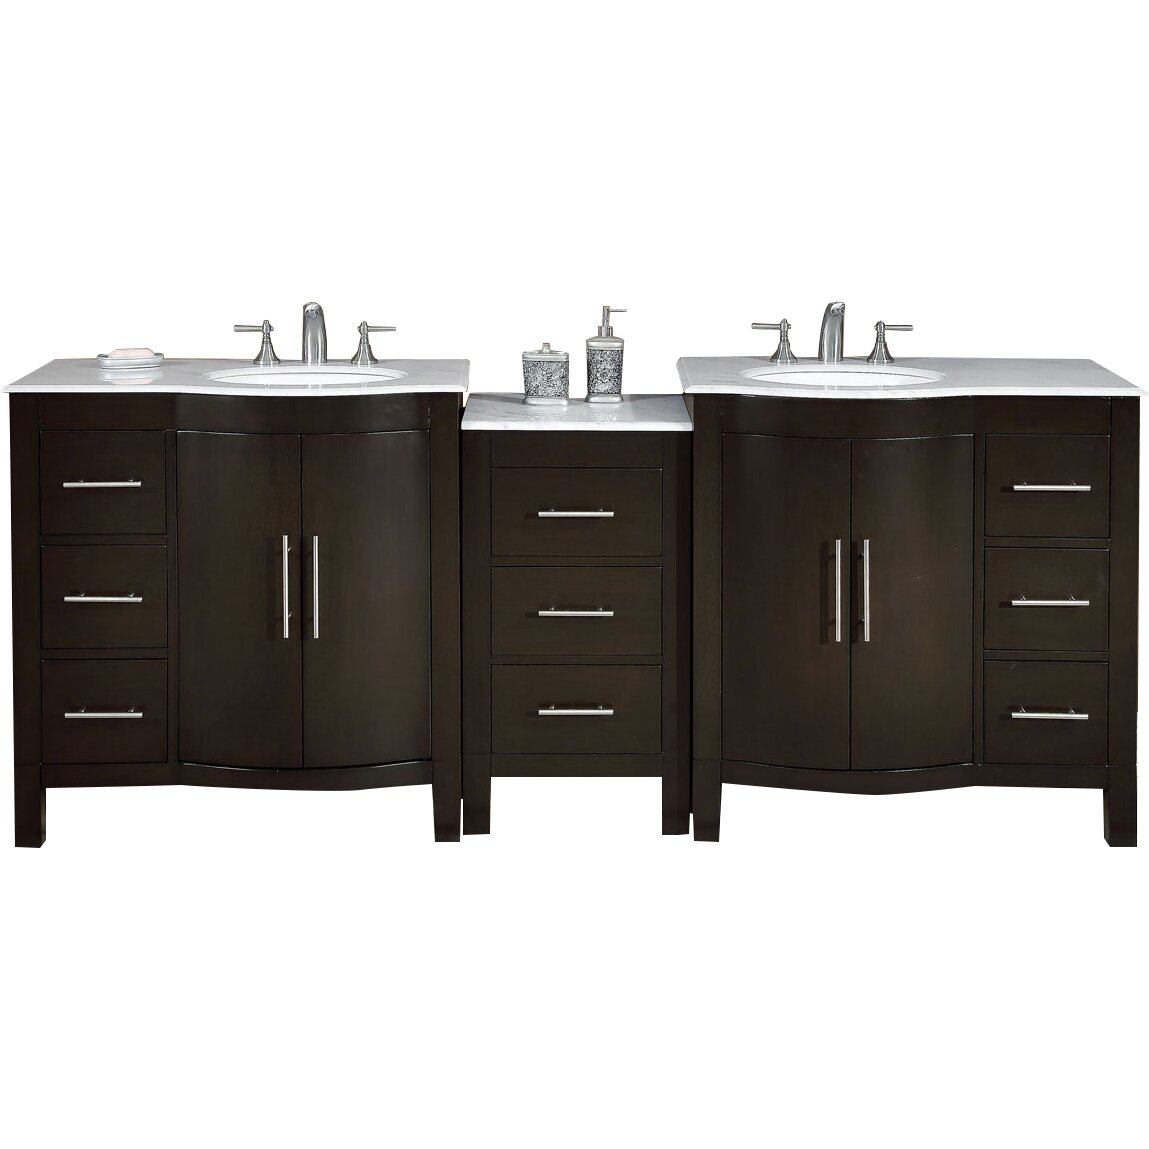 Silkroad exclusive 89 double lavatory sink cabinet bathroom vanity set reviews wayfair - Double sink bathroom vanity with hutch ...